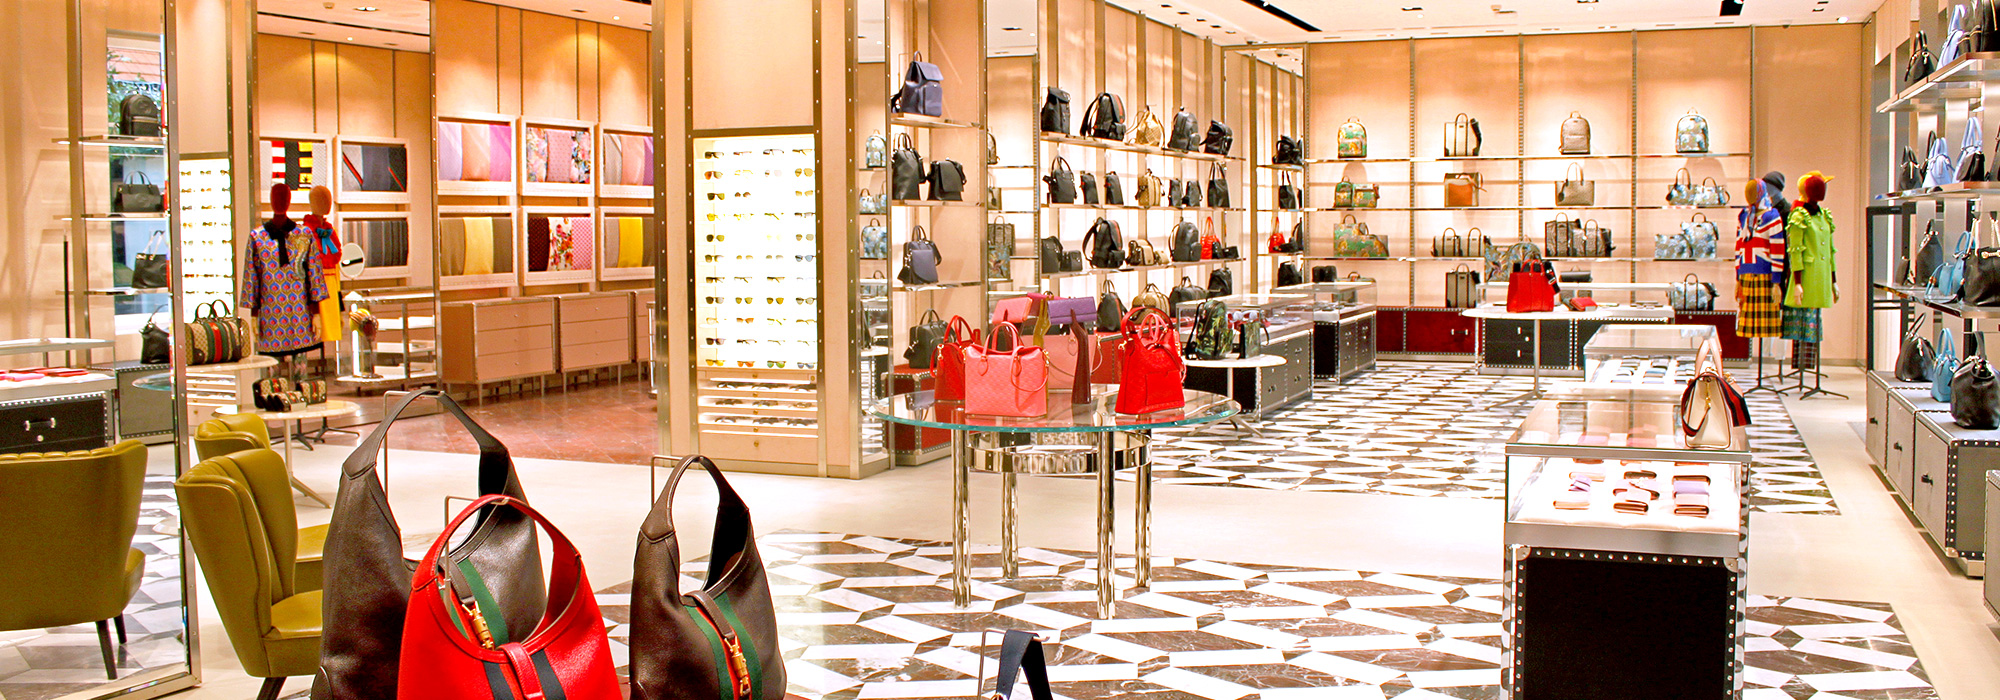 Gucci Outlet - Paris e00cedb777b